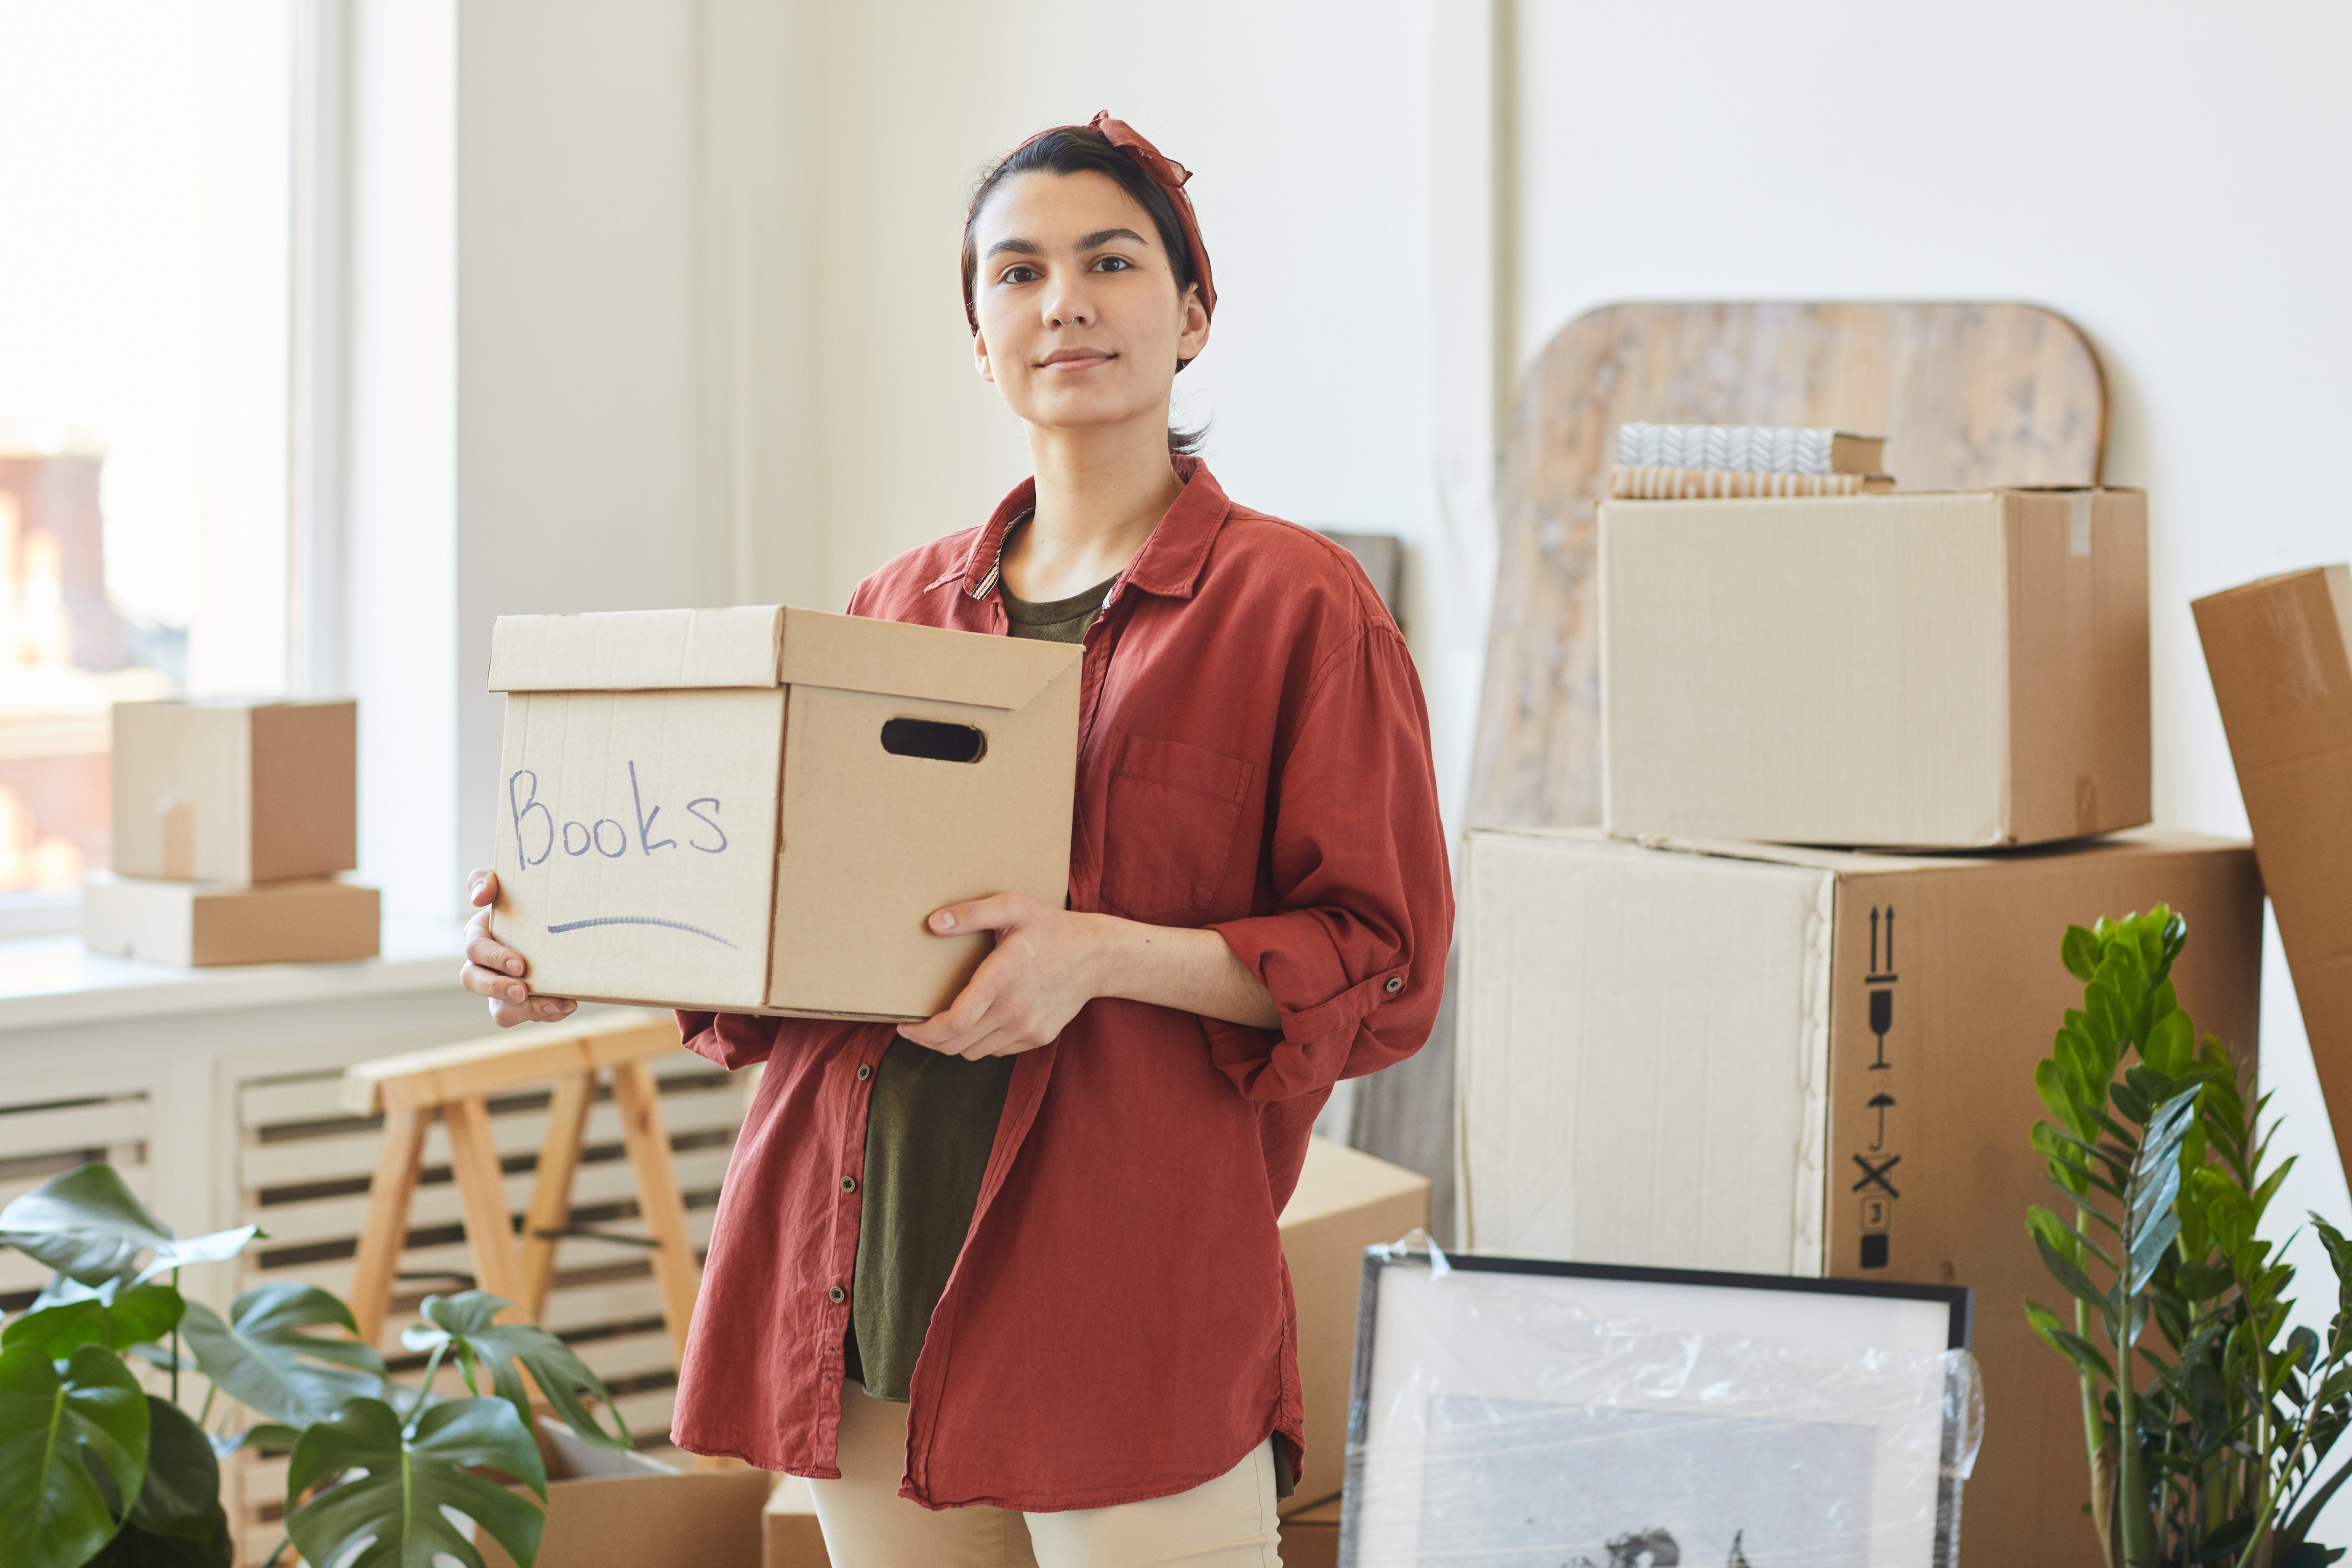 Renter holding boxes for packing, surrounded by boxes in an empty apartment